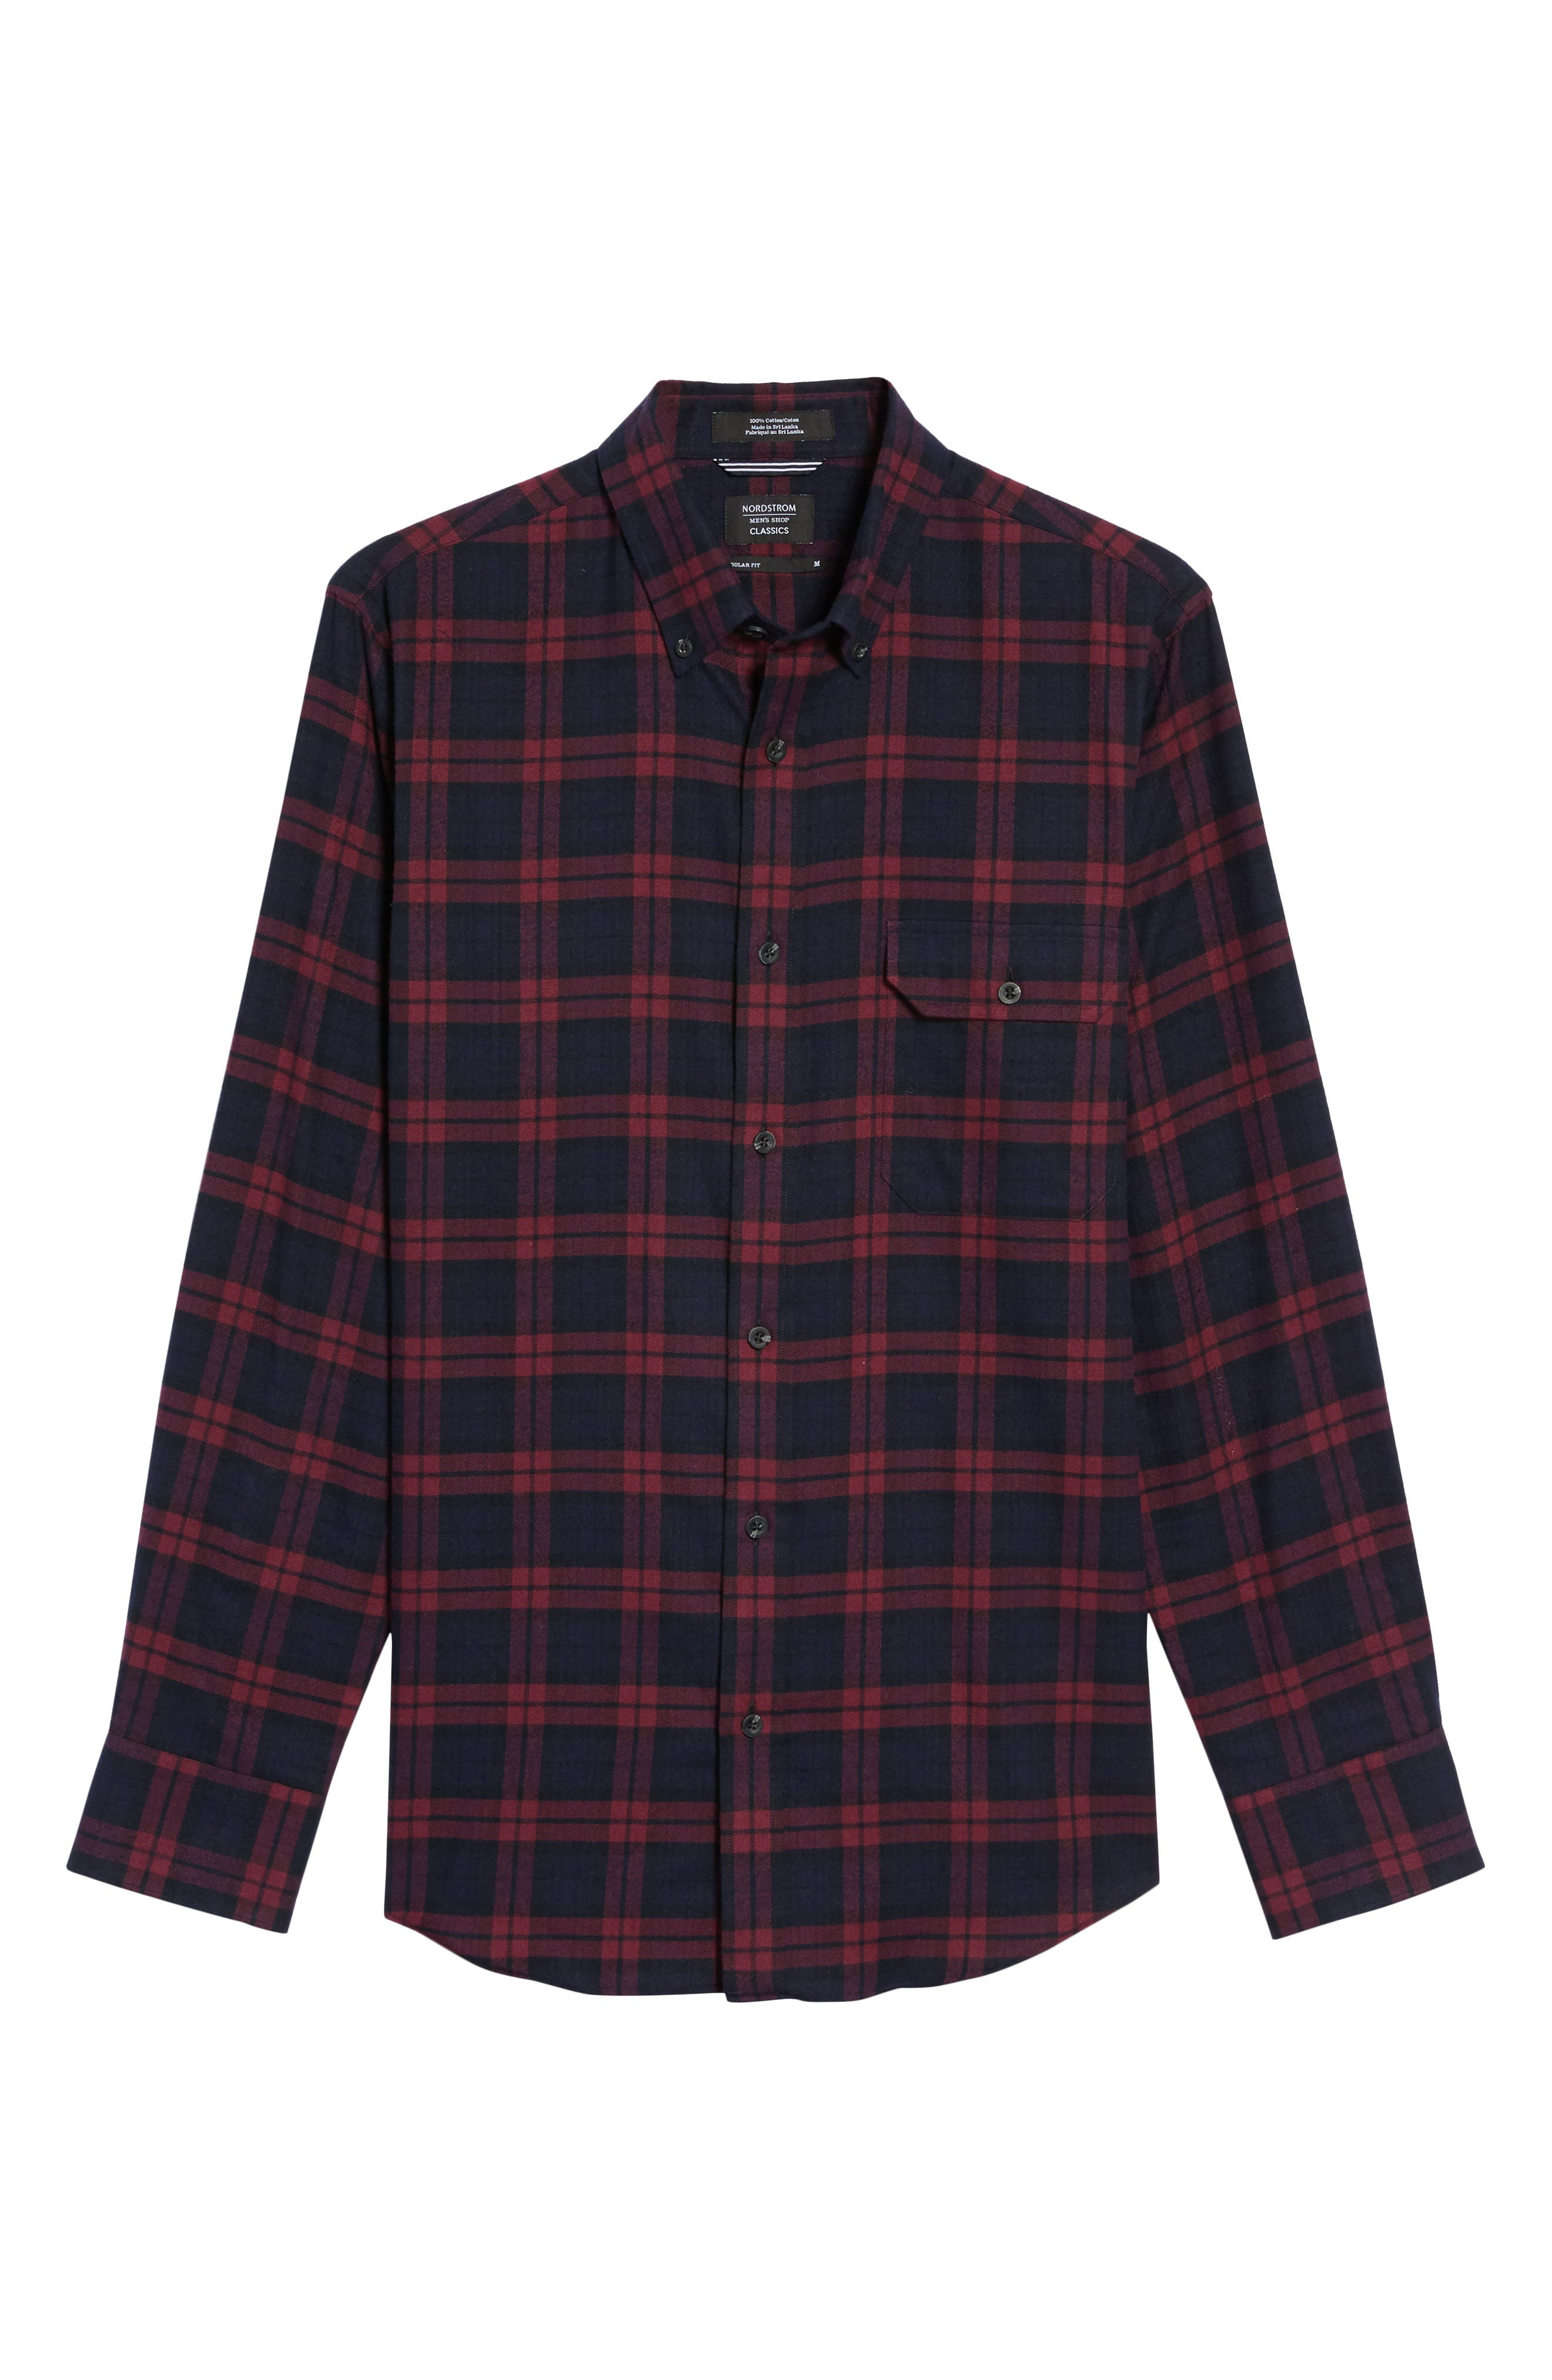 Regular Fit Plaid Sport Shirt,                             Alternate thumbnail 6, color,                             Red Chili Plaid Flannel